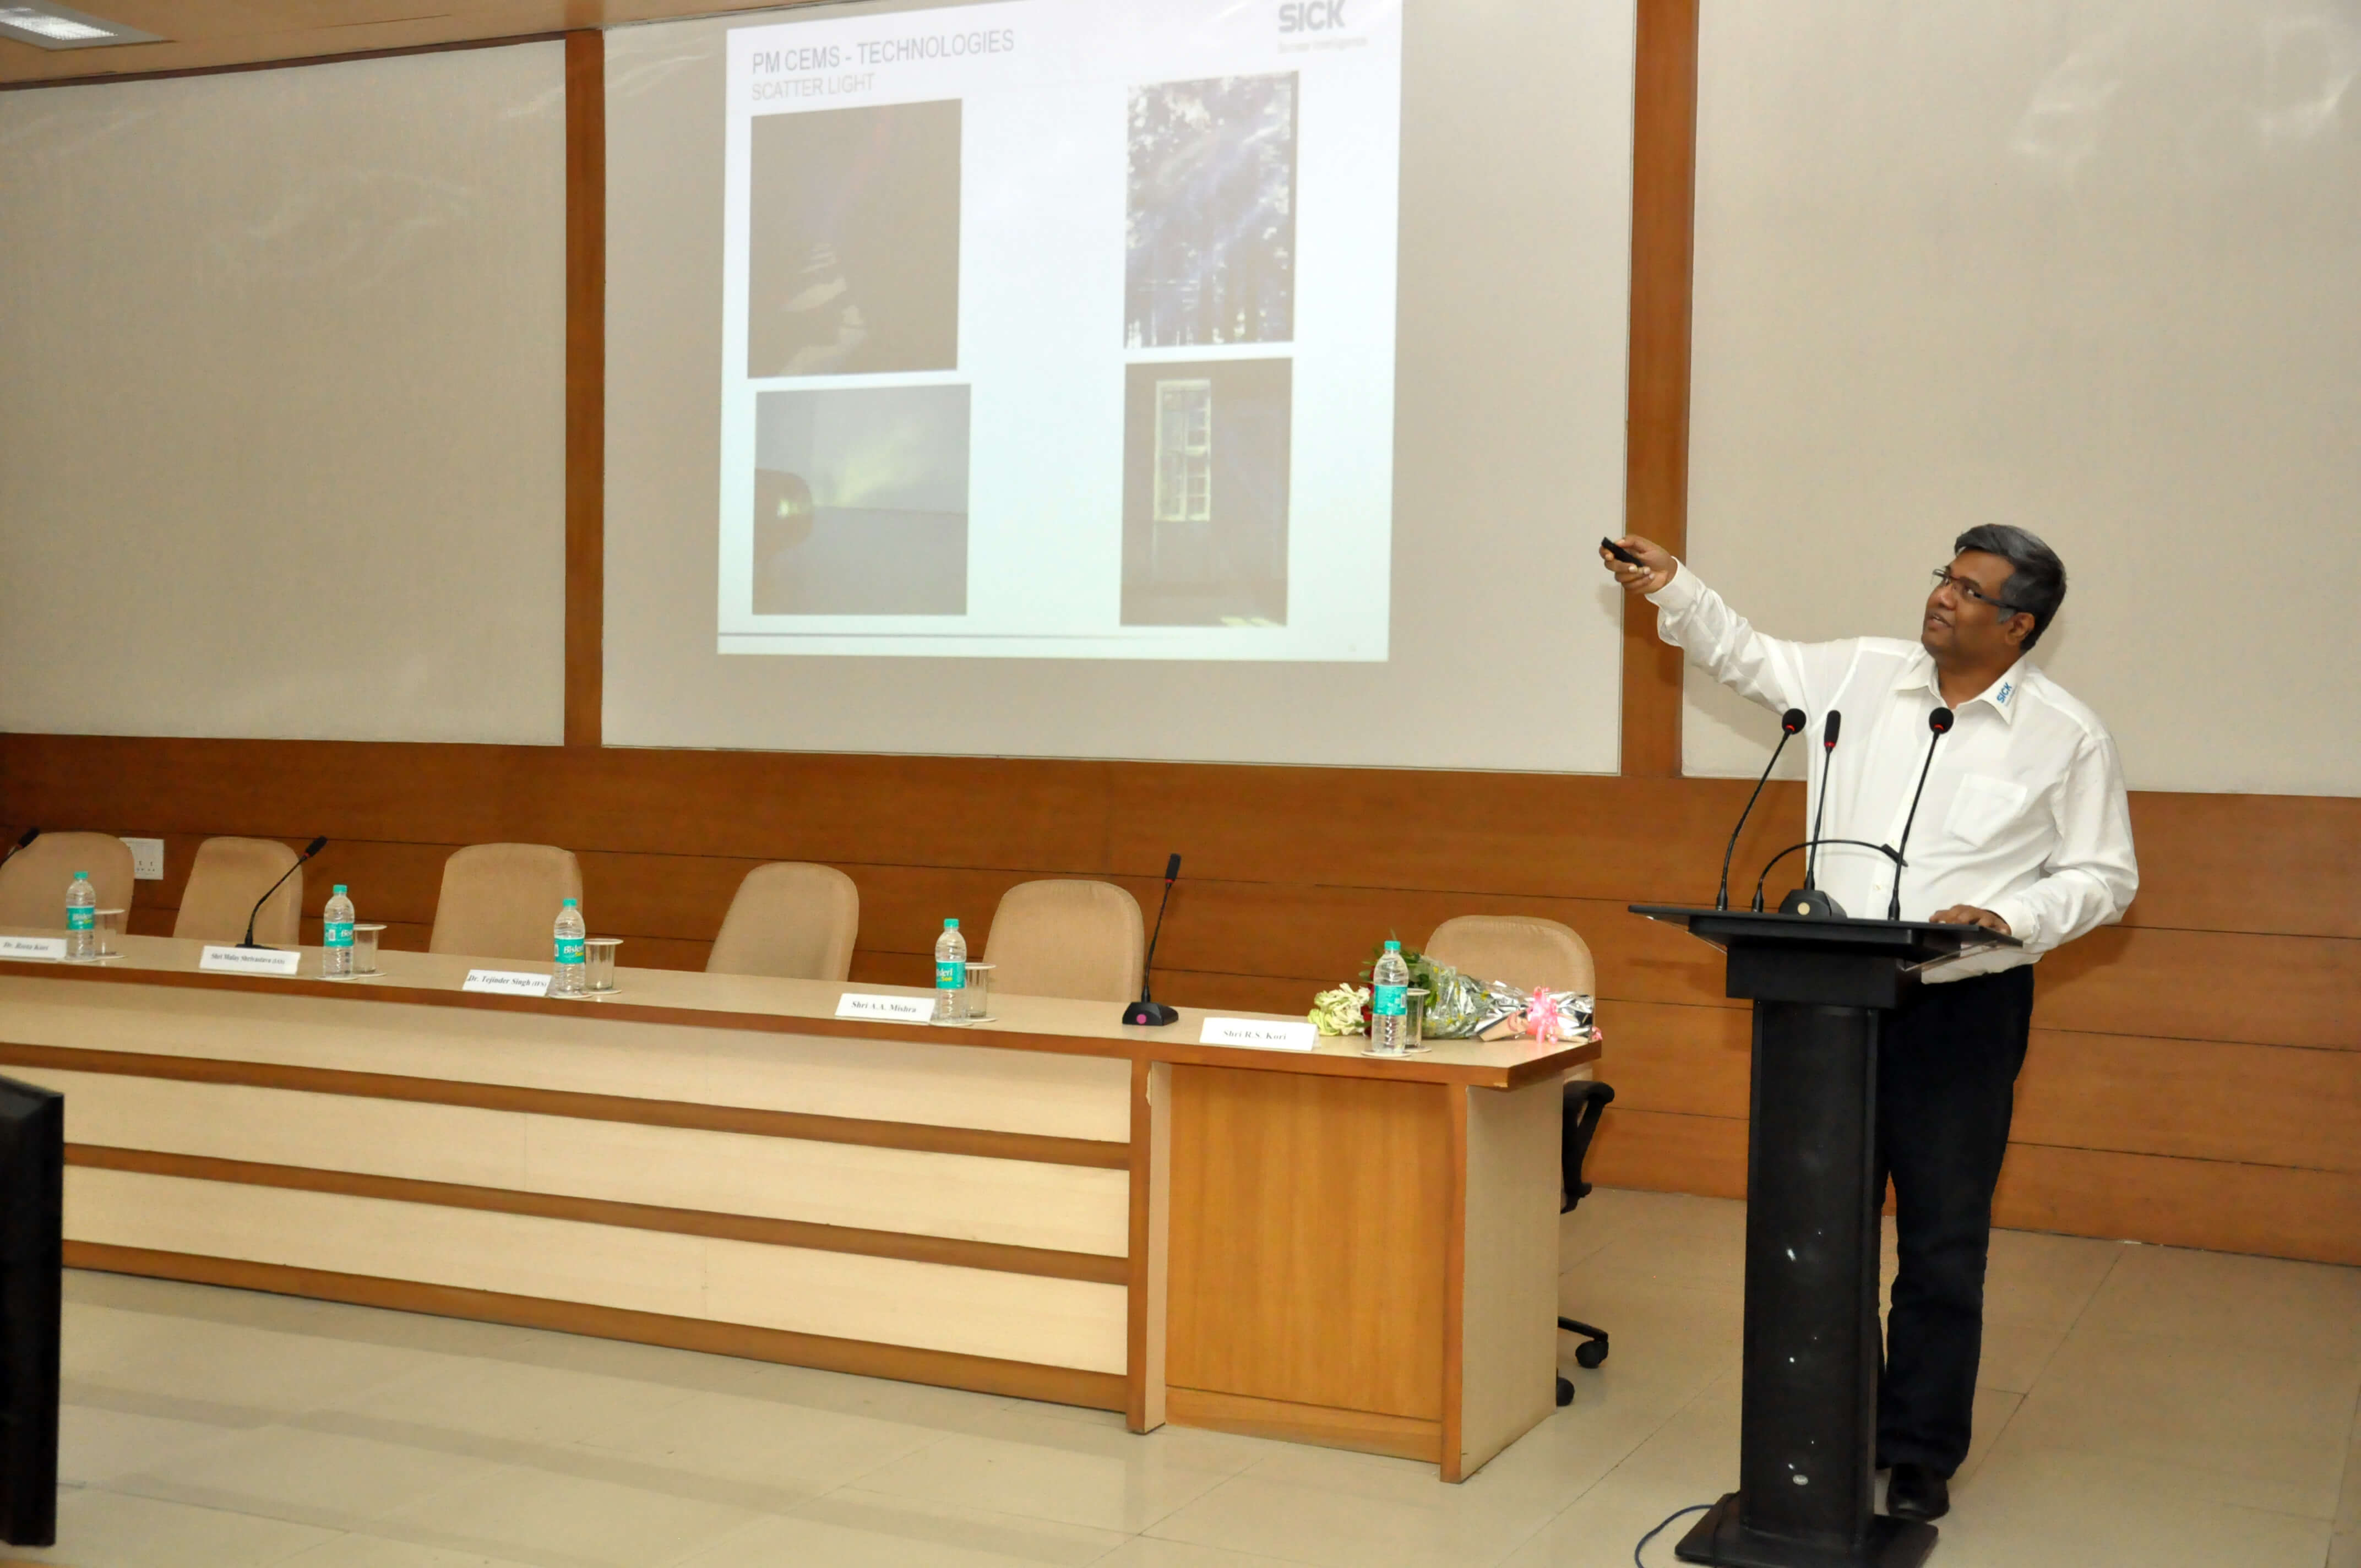 Shri Sankar Kannan, M/s SICK India Pvt. Ltd. talking on PM-CEMS technology